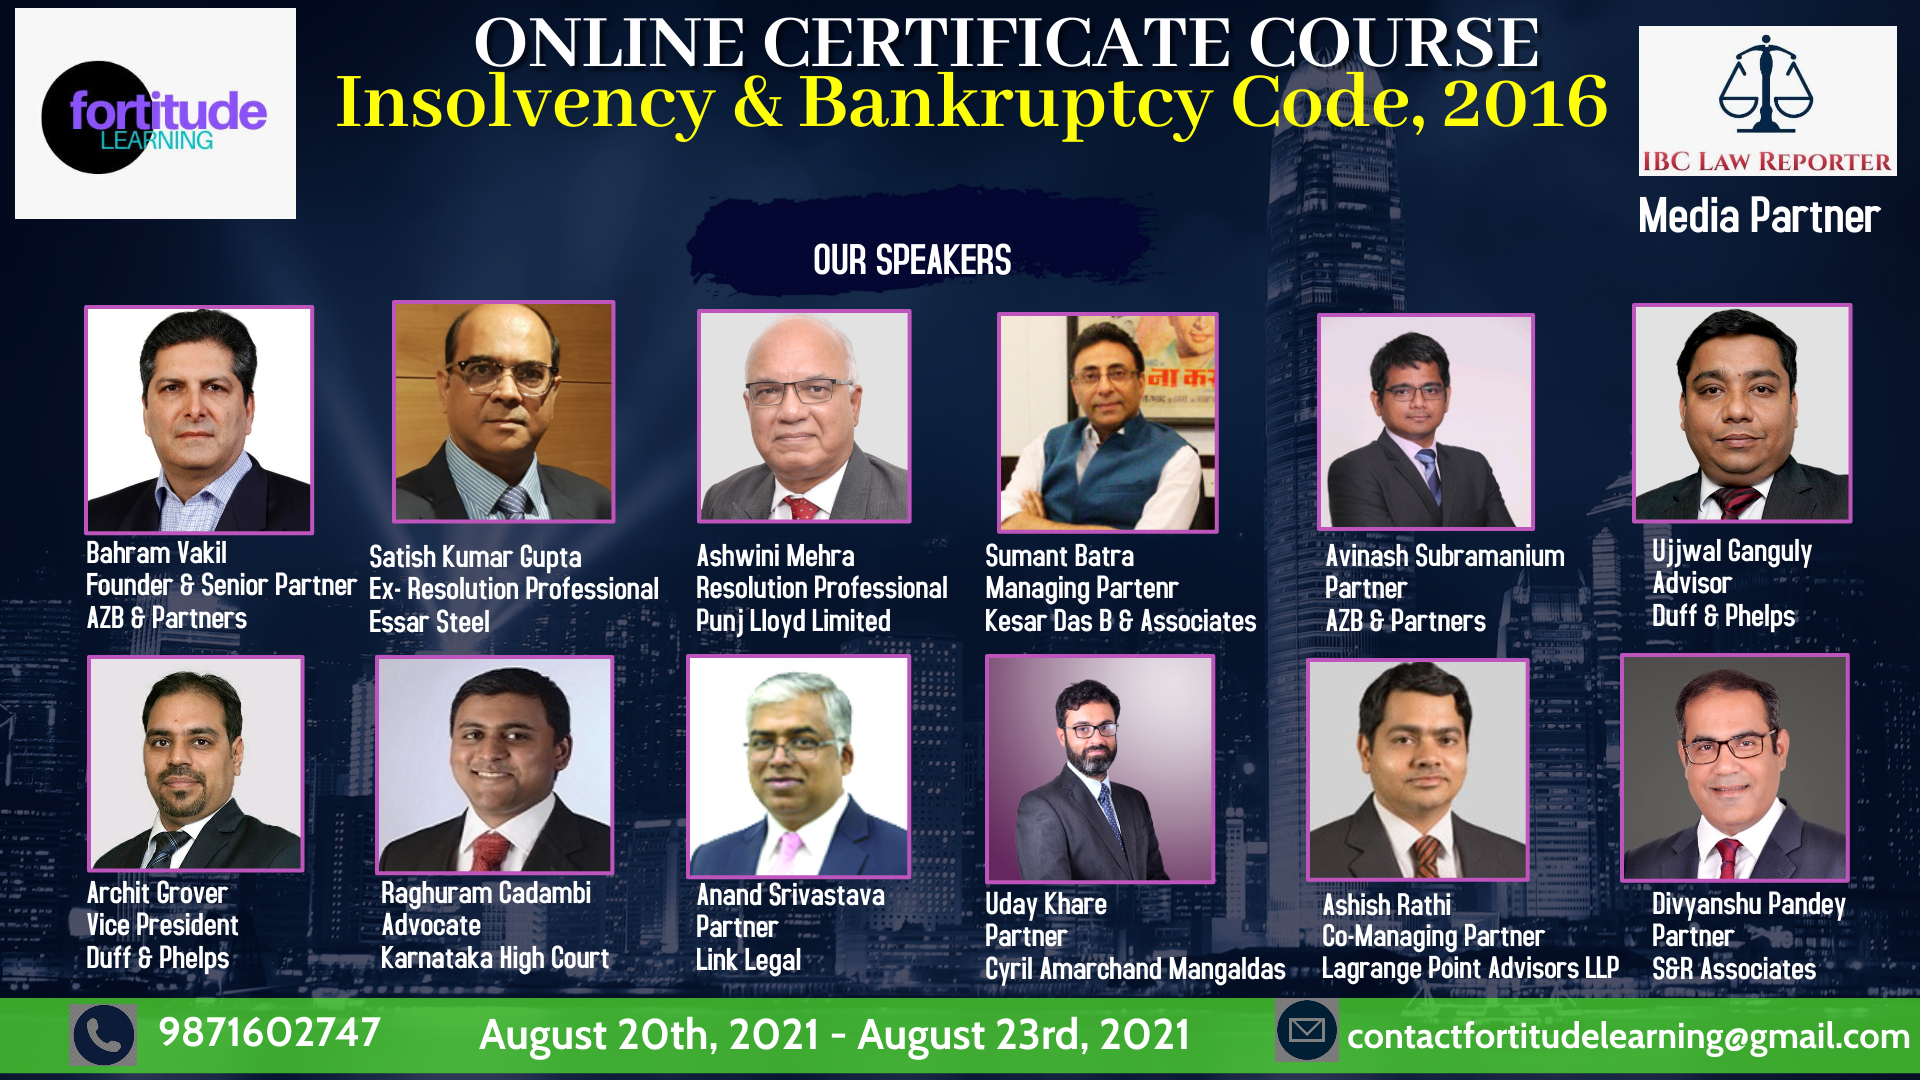 4 Days Online Certificate Course On The Insolvency And Bankruptcy Code, 2016 By Fortitude Learning [August 20th -August 23rd, 2021]